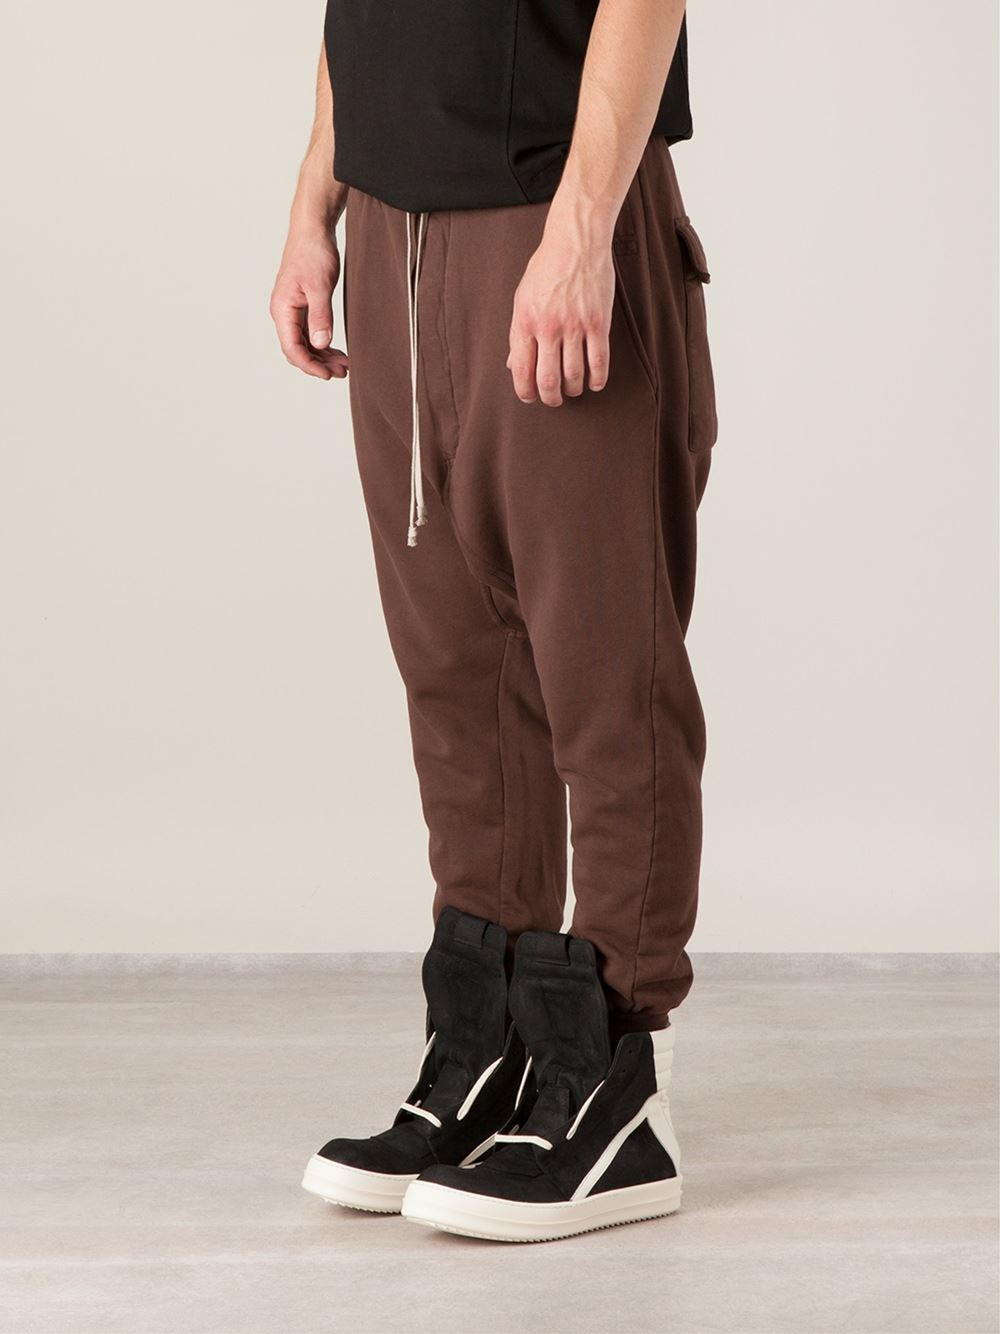 drop crotch zip shorts - Brown Rick Owens uZNdln3lNw